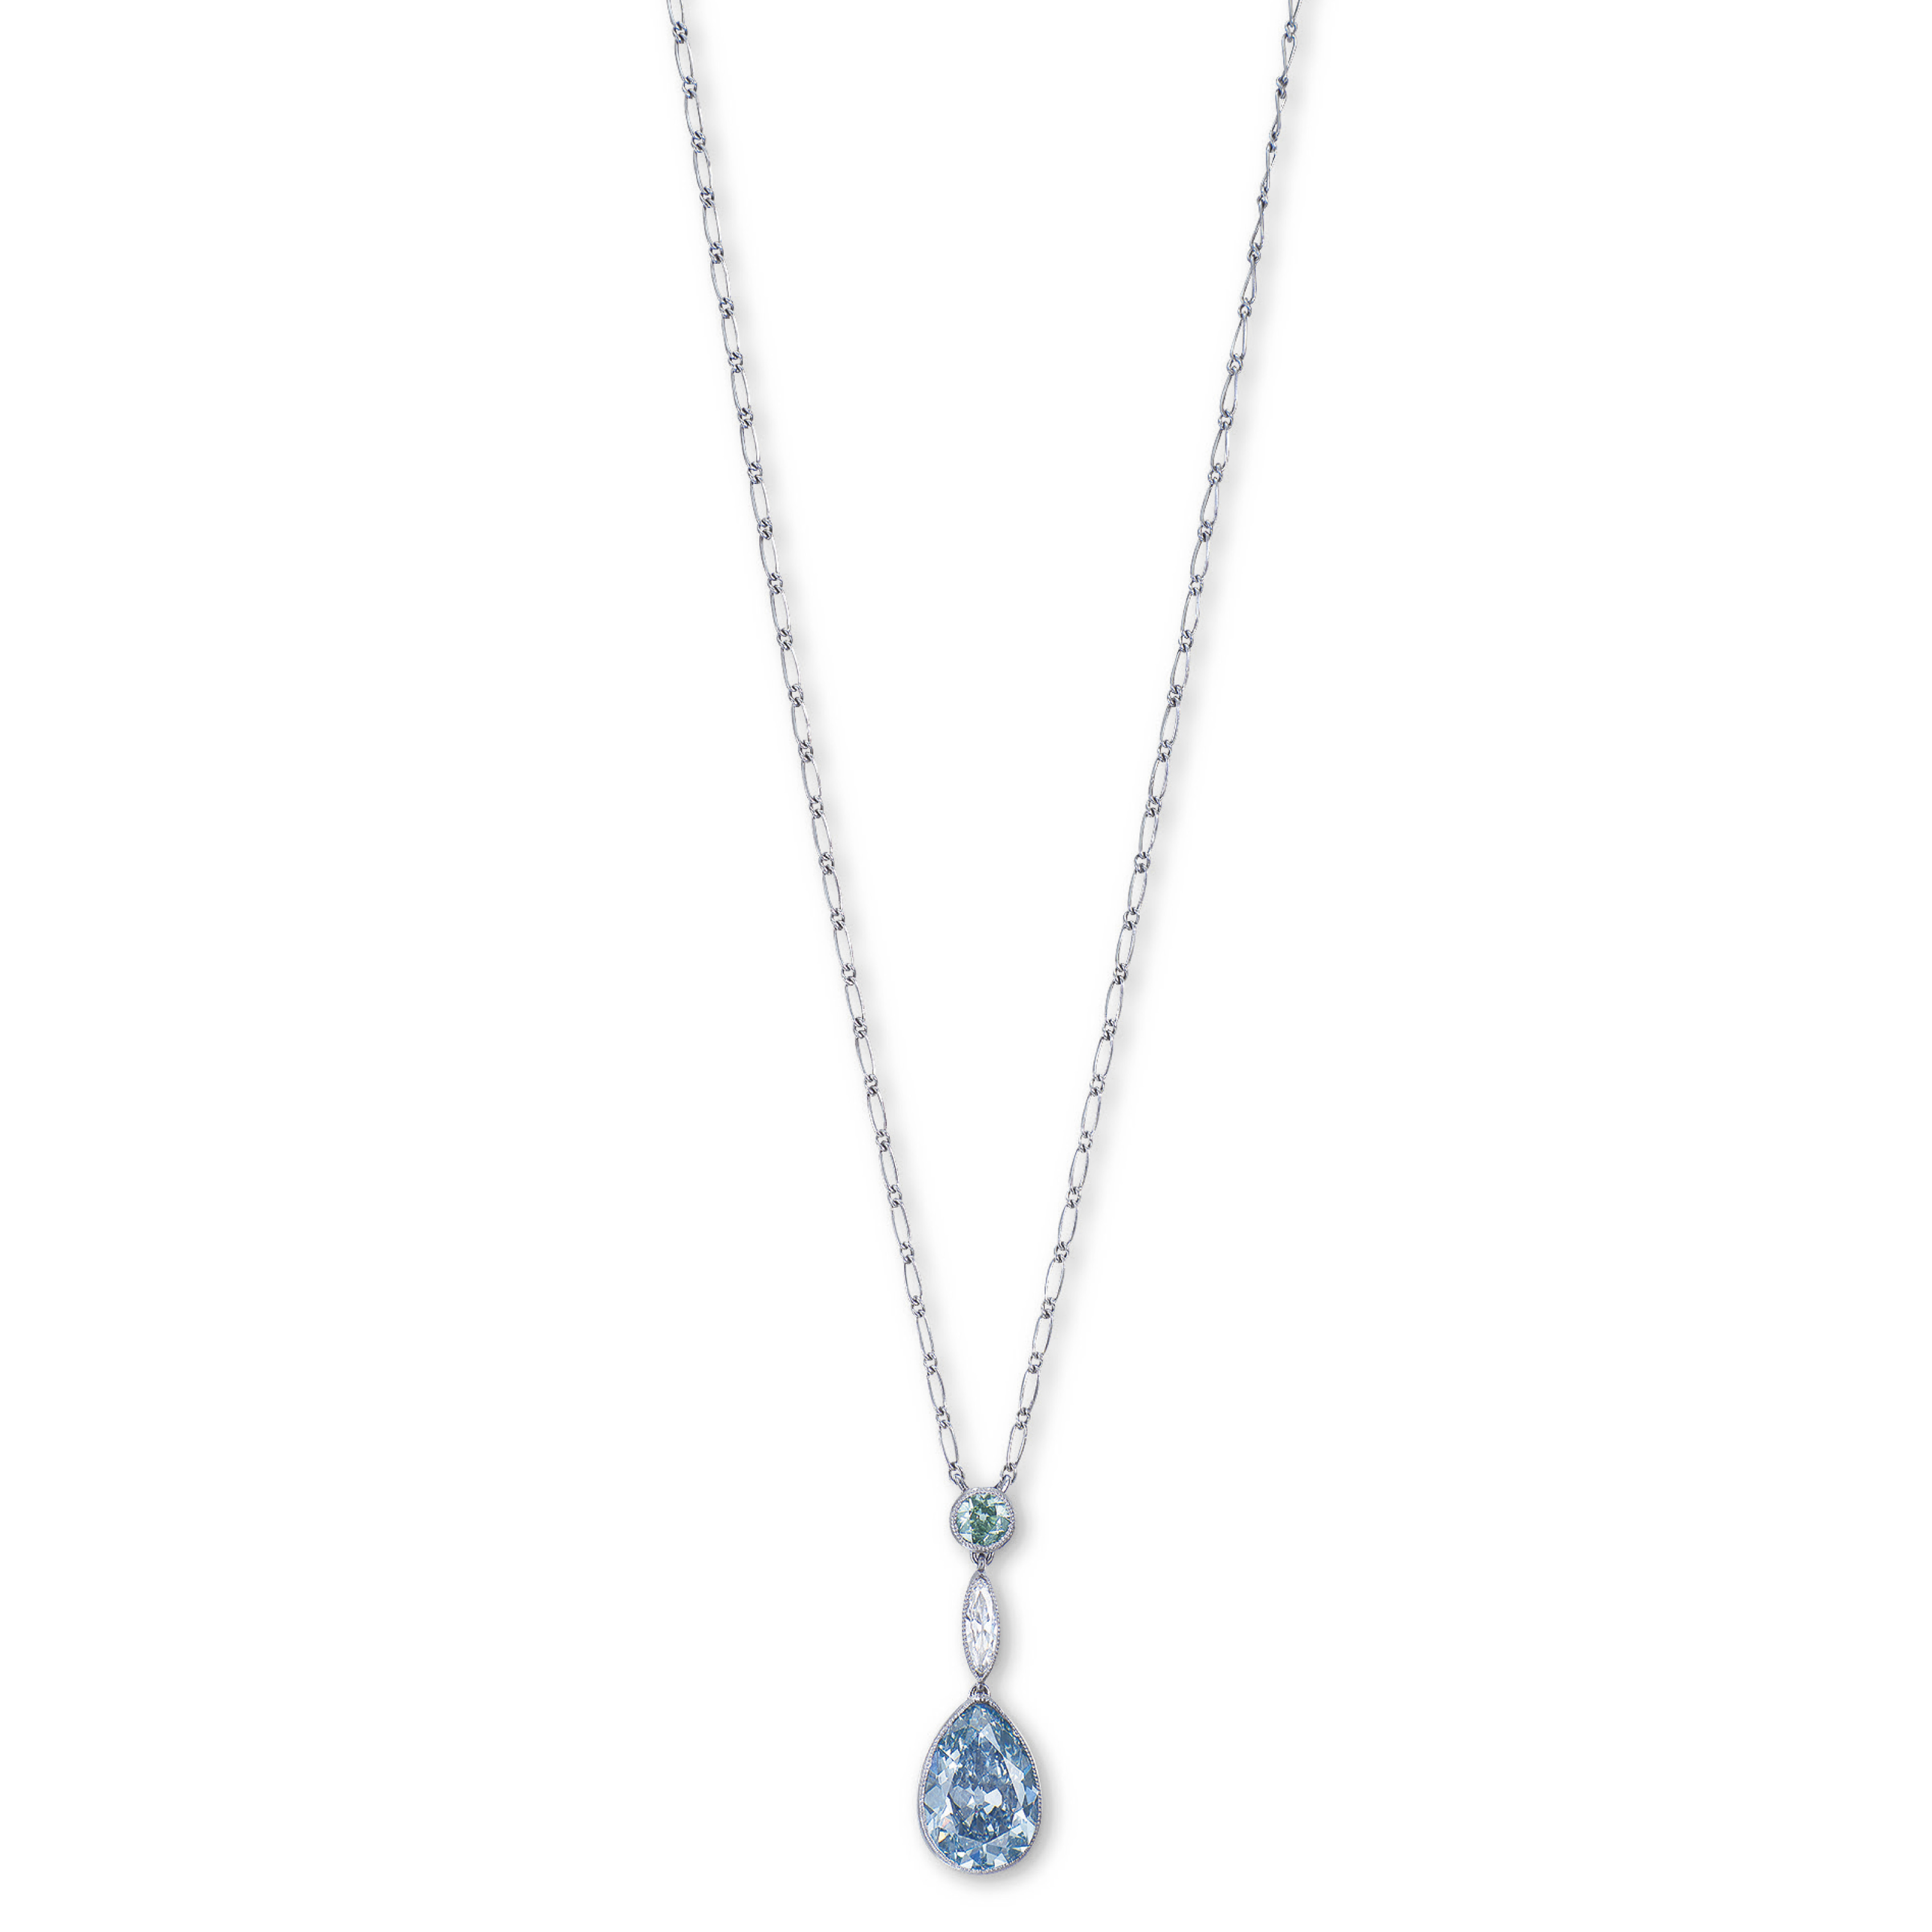 AN UNIQUE COLOURED DIAMOND AND DIAMOND PENDENT NECKLACE, BY TIFFANY & CO.